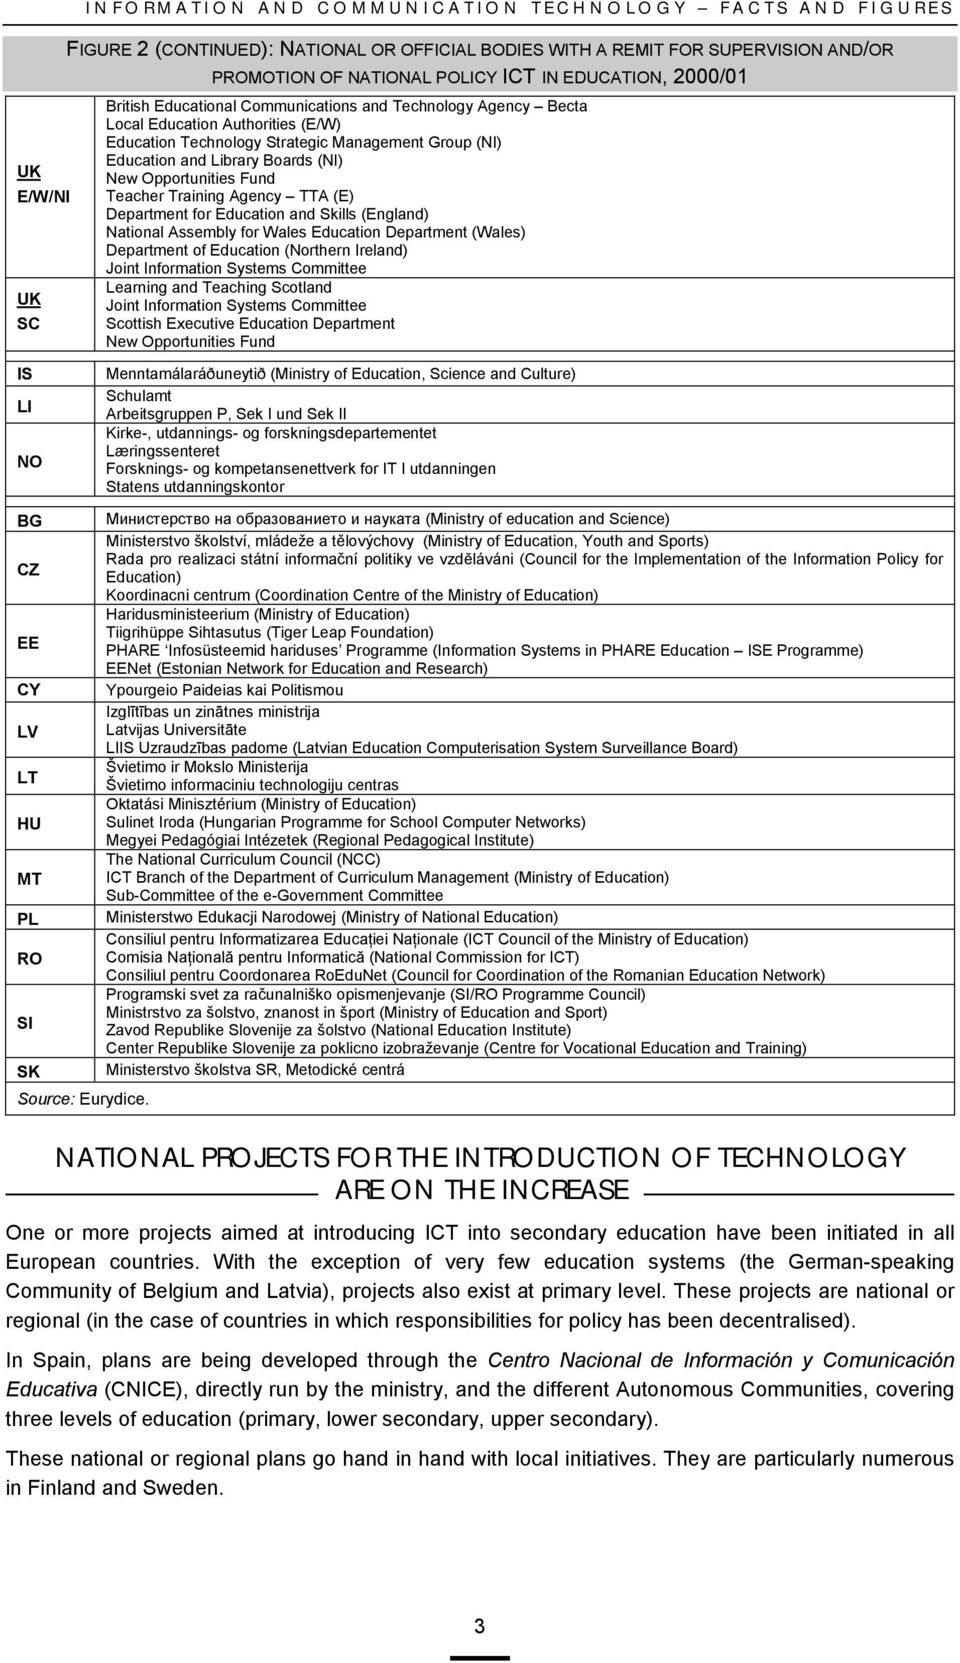 Opportunities Fund Teher Trining Ageny TTA (E) Deprtment for Edution nd Skills (Englnd) Ntionl Assemly for Wles Edution Deprtment (Wles) Deprtment of Edution (Northern Irelnd) Joint Informtion